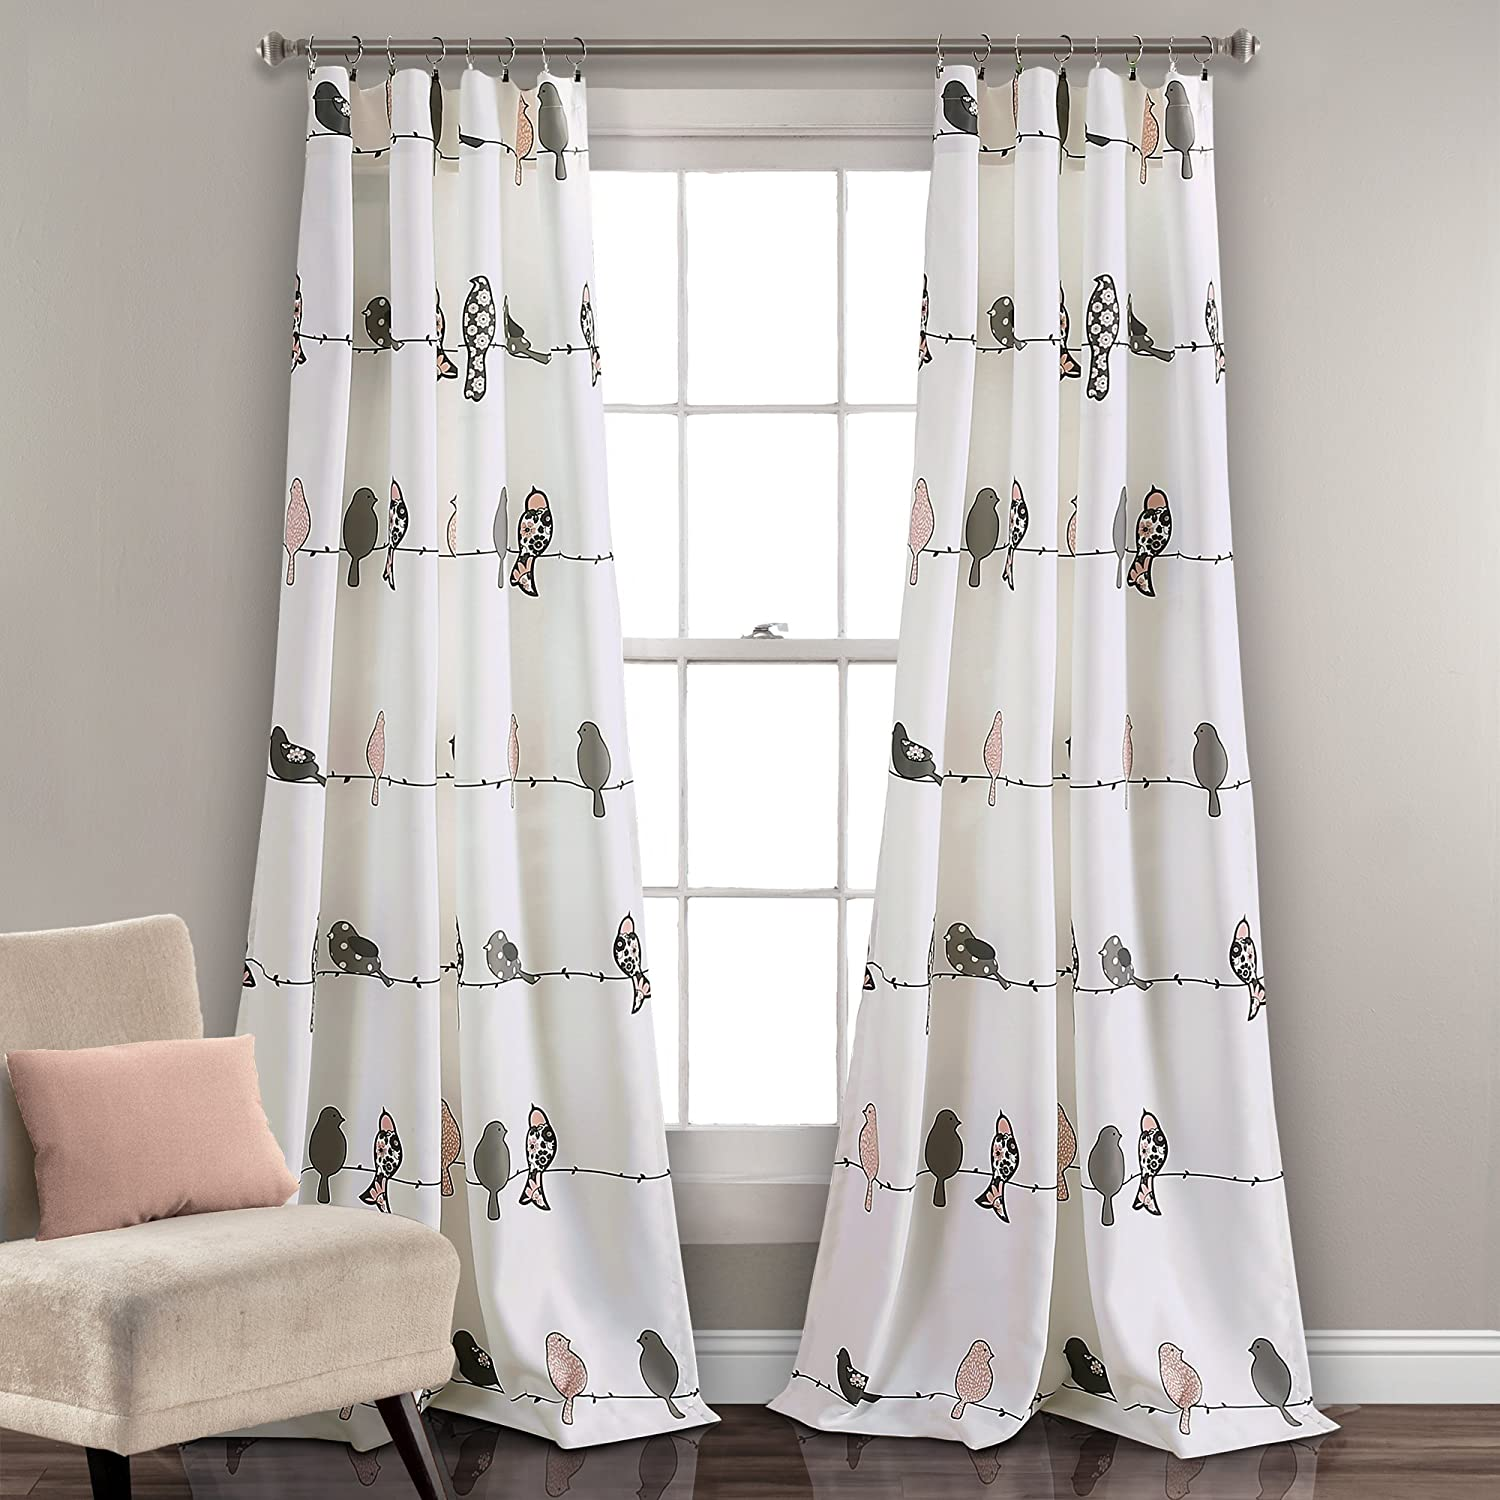 Lush Decor Rowley Birds Curtains